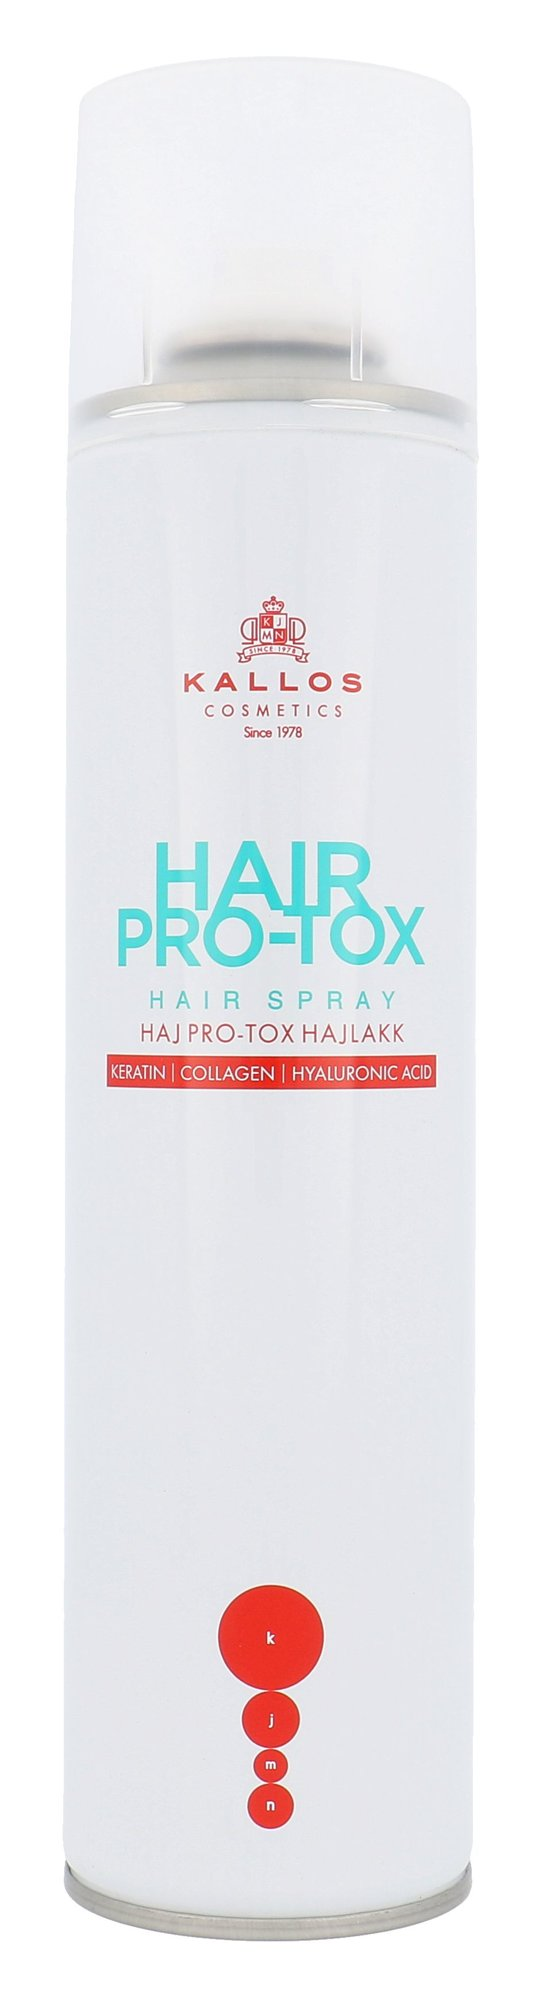 Kallos Cosmetics Hair Pro-Tox Cosmetic 400ml